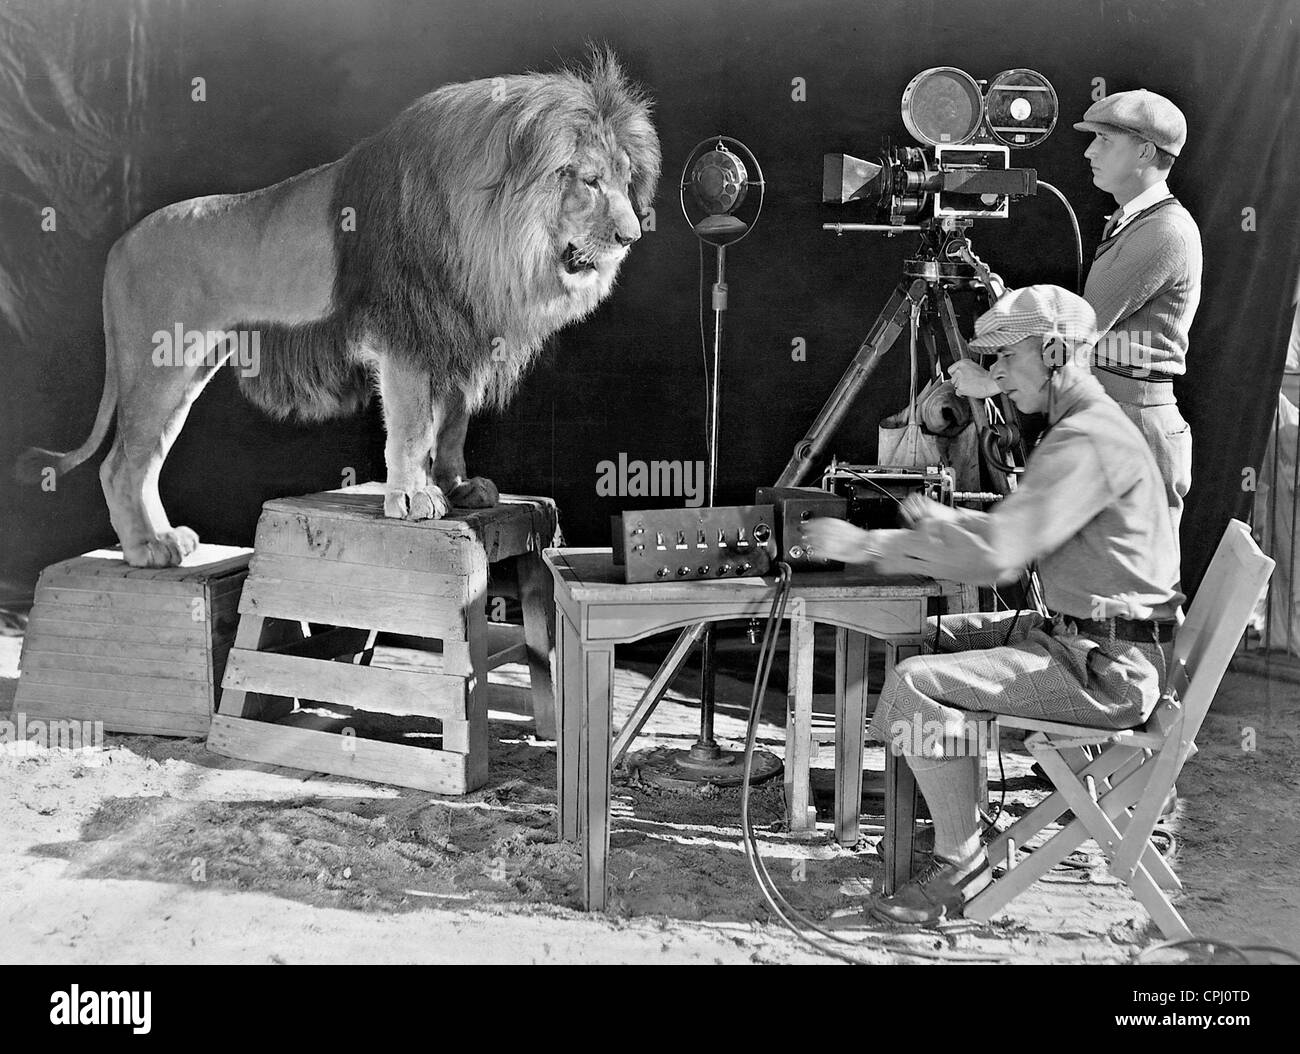 history of mgm as one of the hollywoods most indluential studios